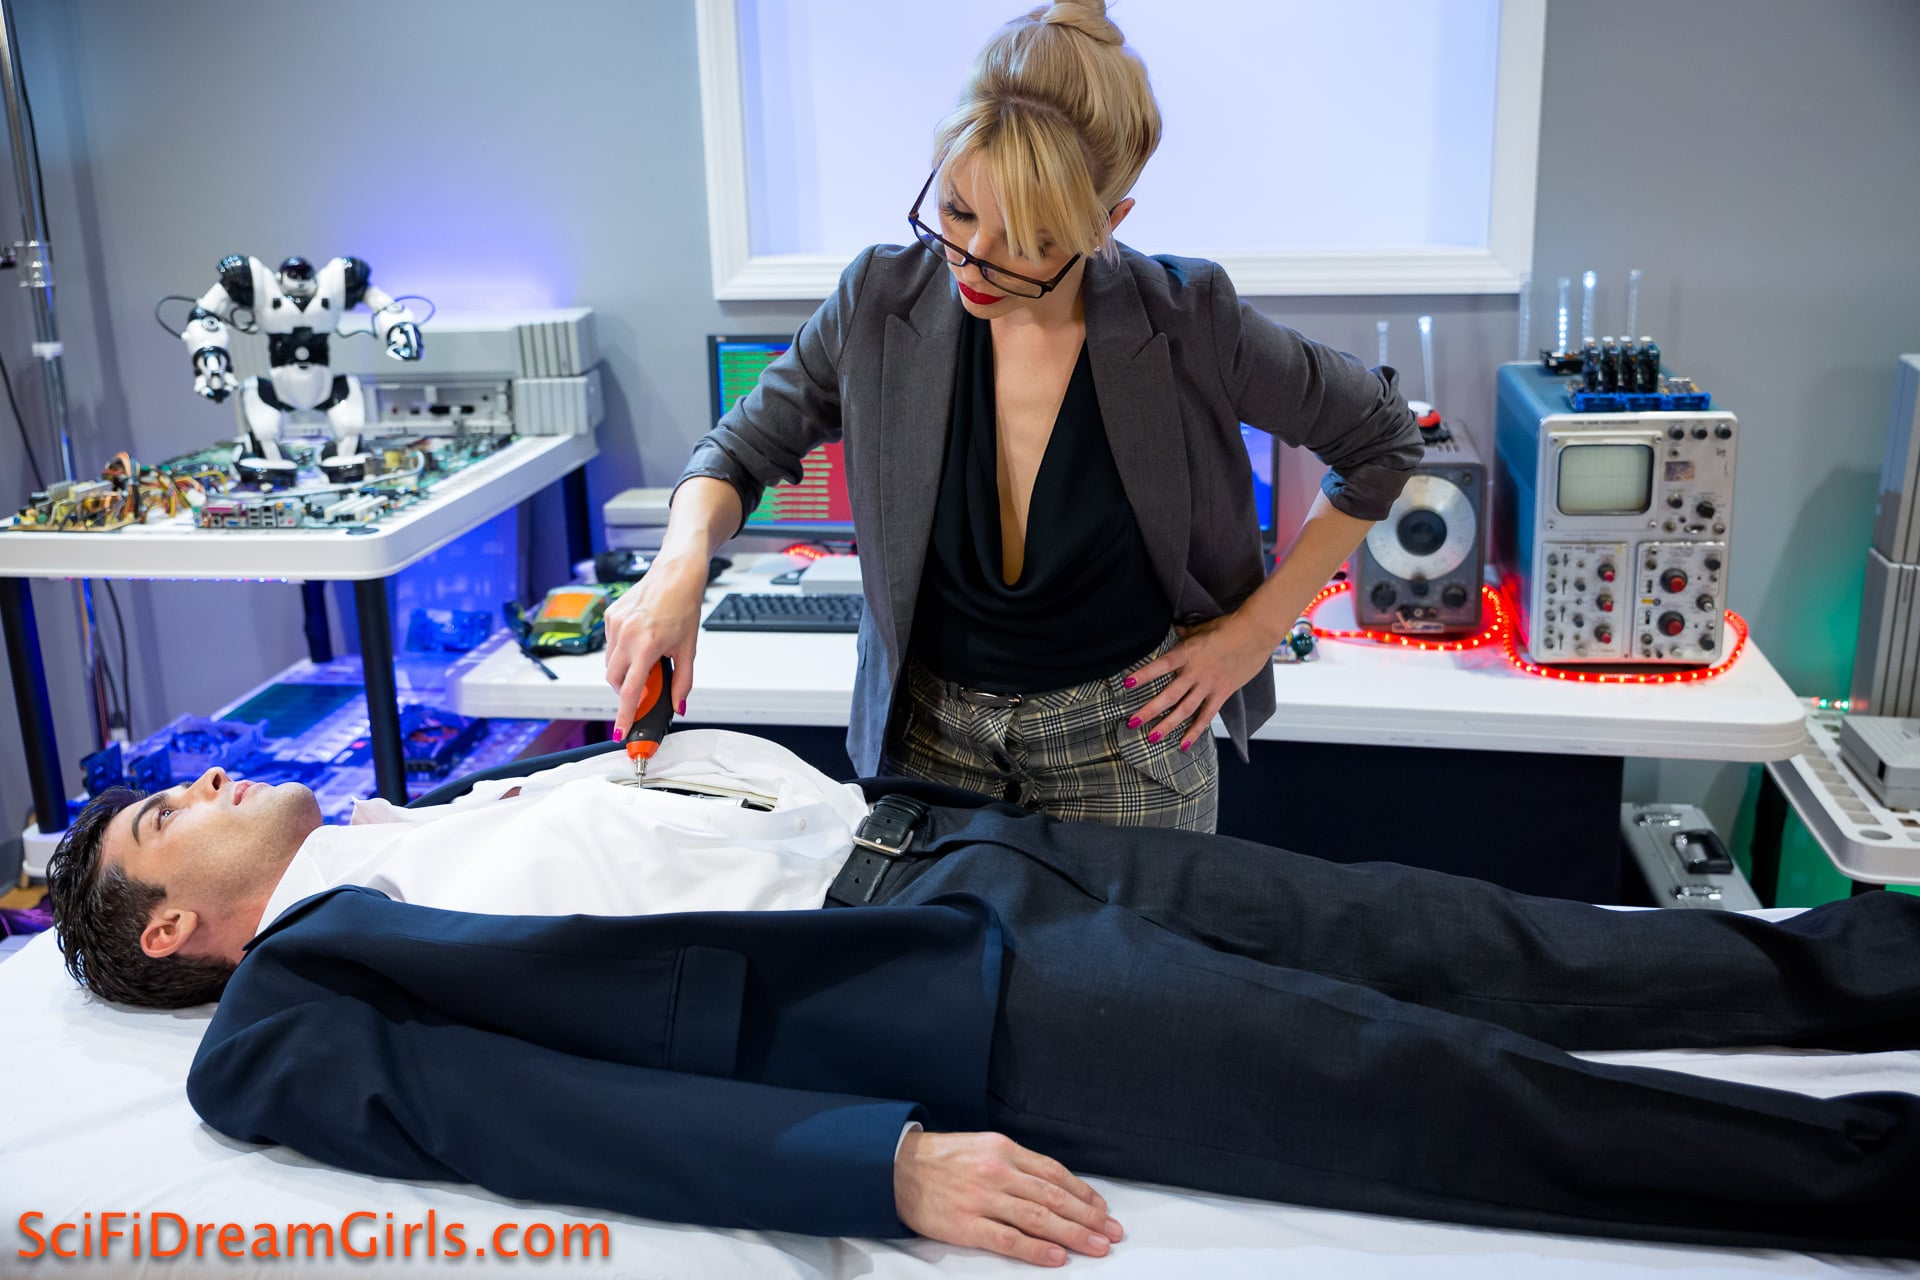 Dr. Ashley Fires creates the perfect man. A Male Robot for her sexual pleasure.